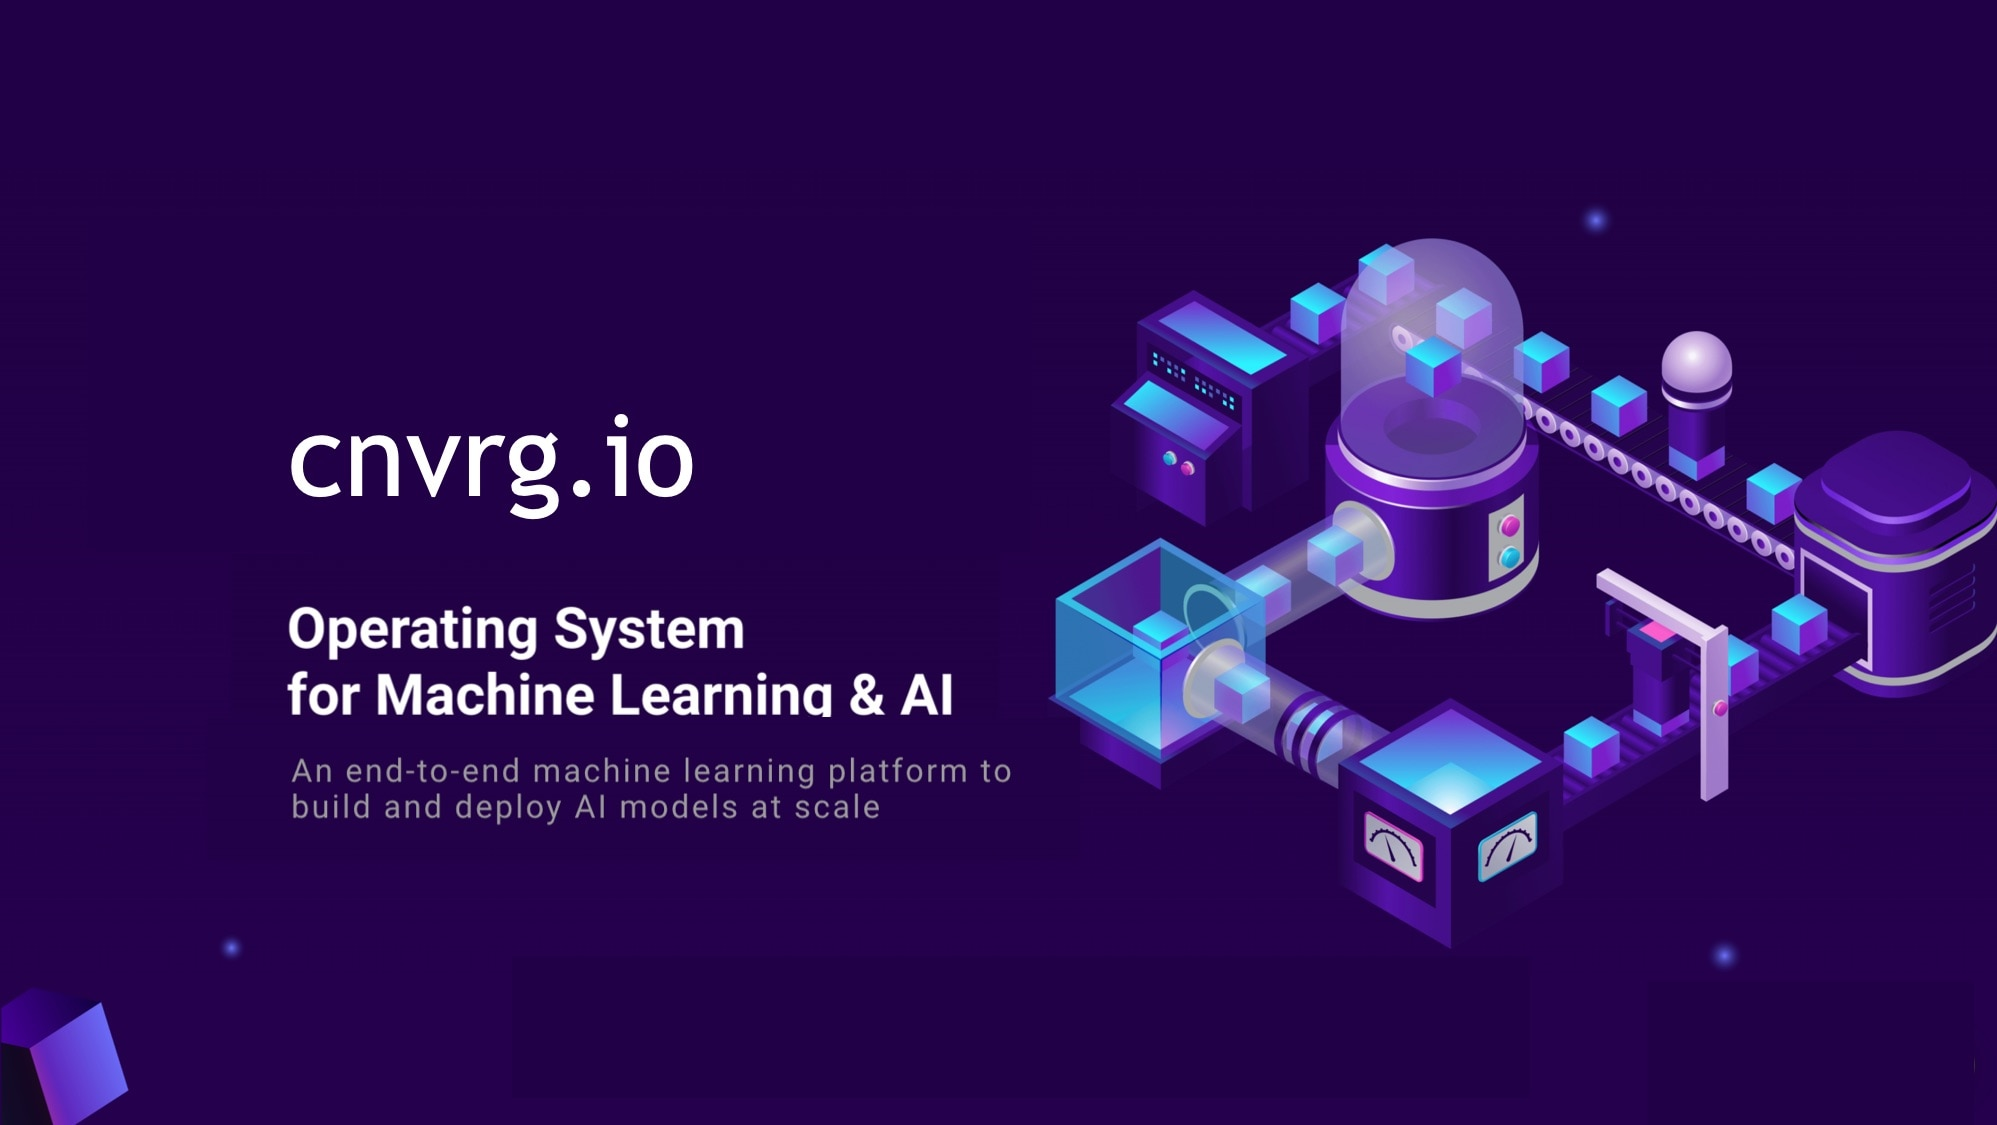 cnvrg.io data science platform from research to production